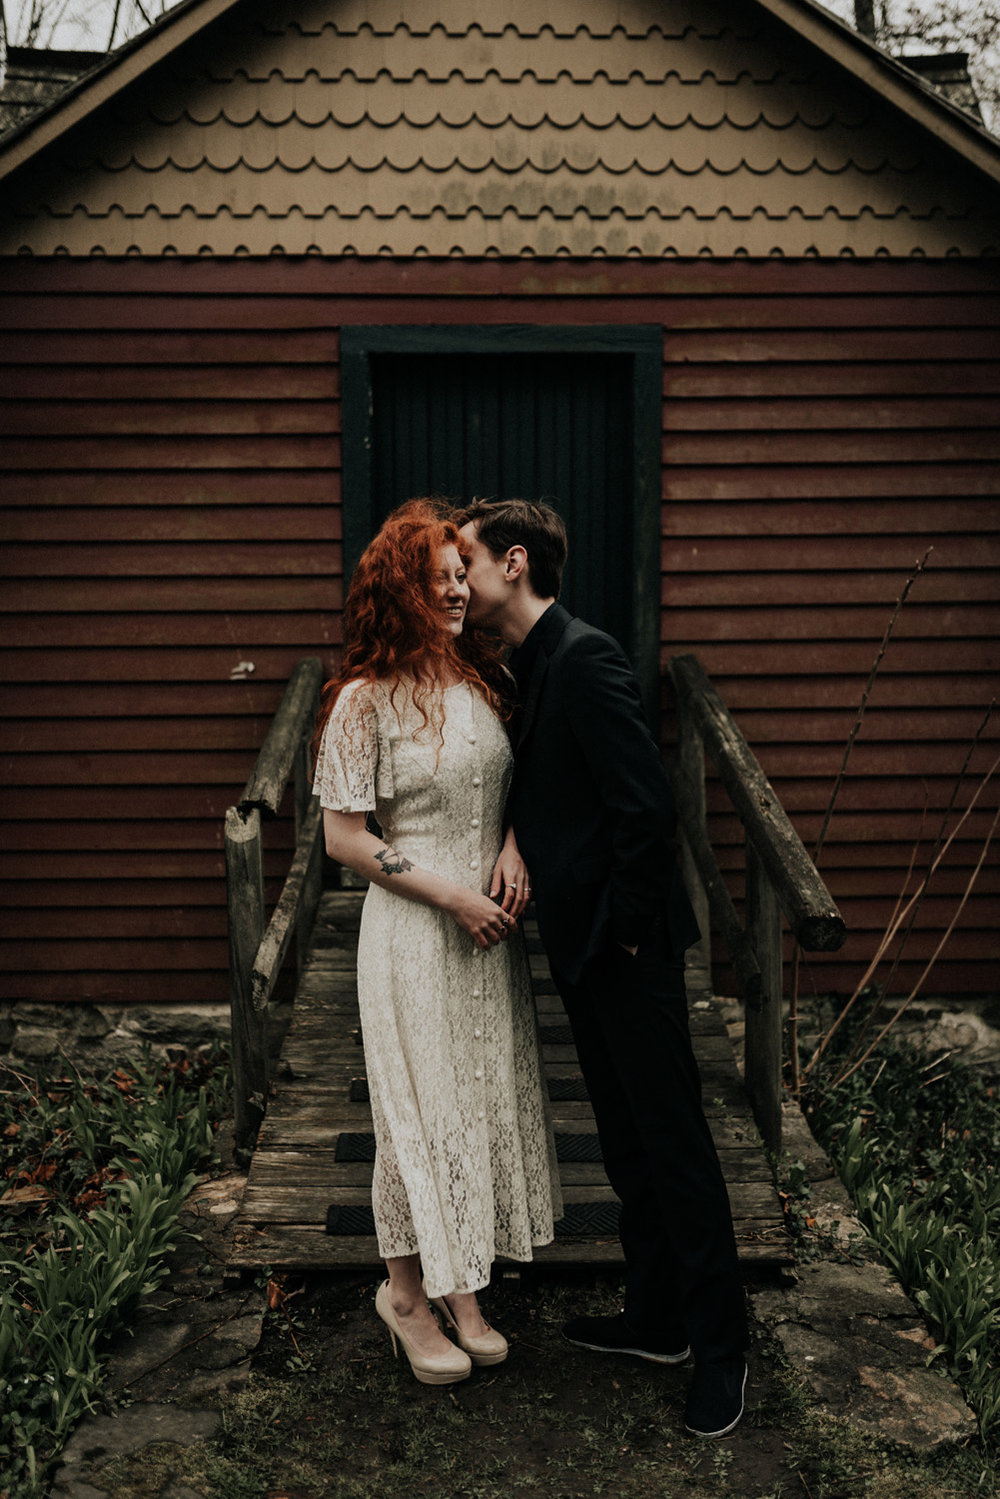 KyleWillisPhoto-Kyle-Willis-Photography-Barclay-Farmstead-Museum-Engagement-Photos-Philadelphia-Wedding-Photographer-New-Jersey-Cherry-Hill-Intimate